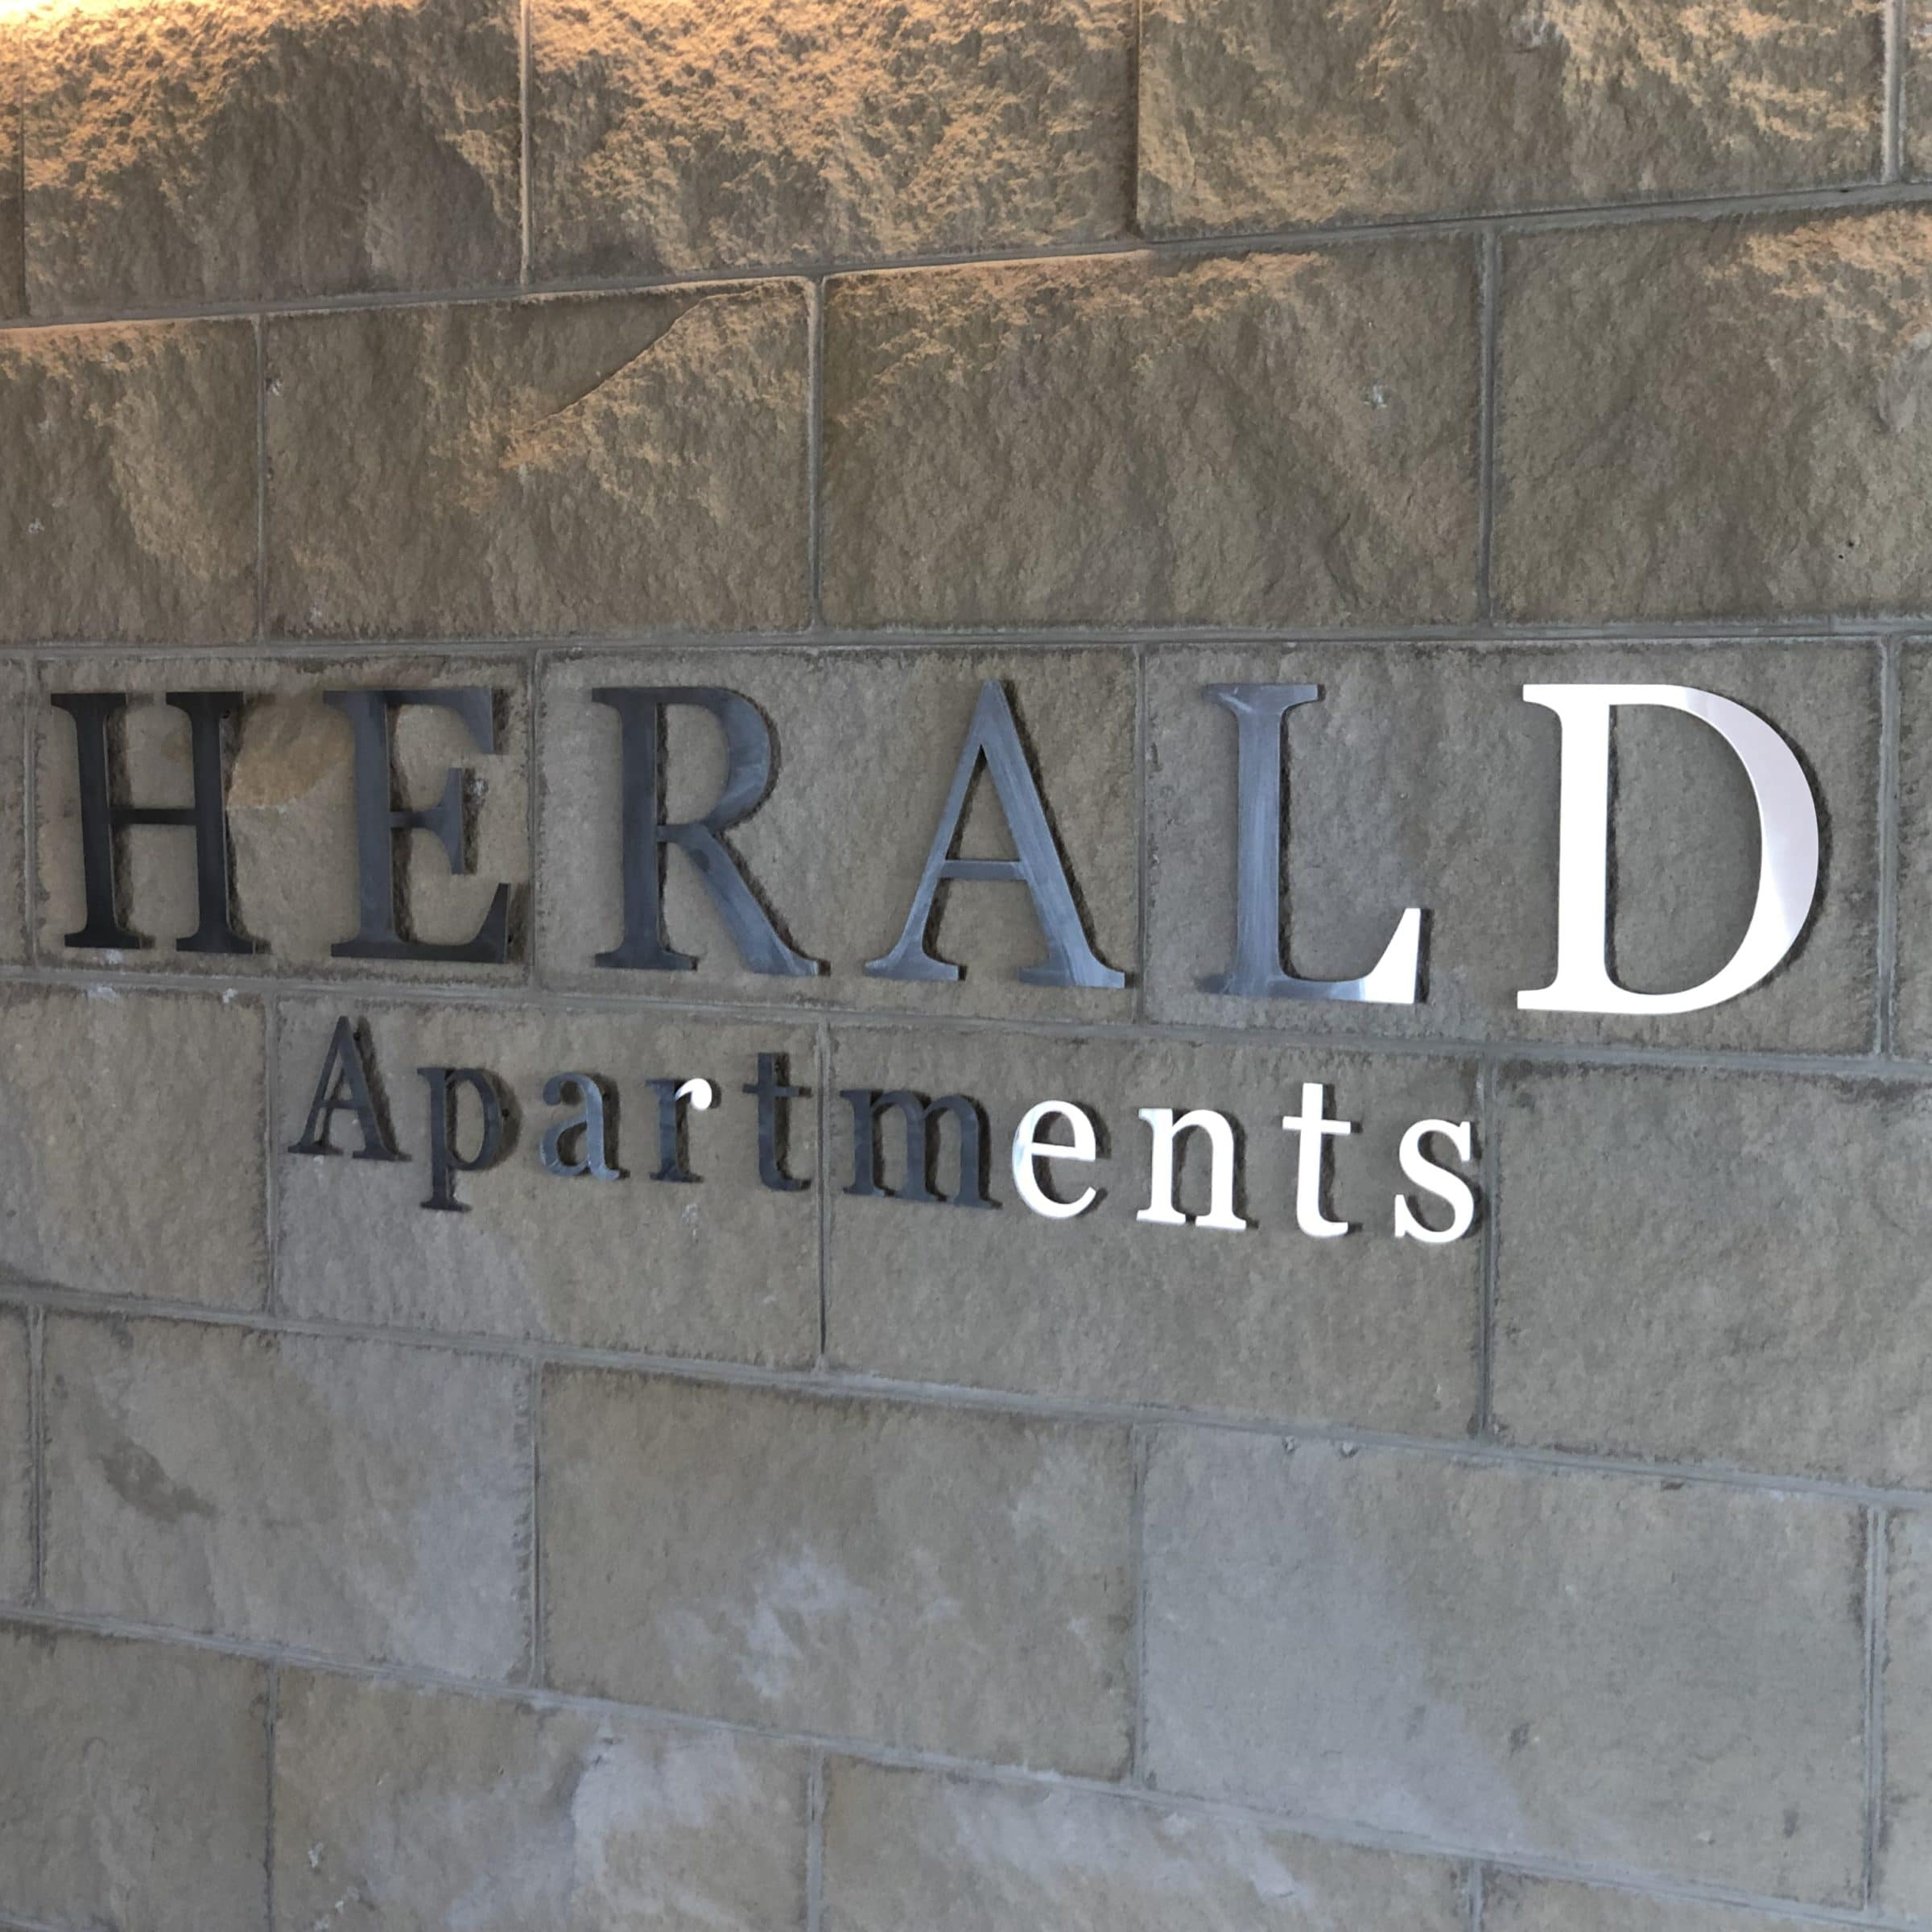 Herald Apartments - https://www.newcastleapartments.com.au/wp-content/uploads/2019/12/Sign-scaled.jpg